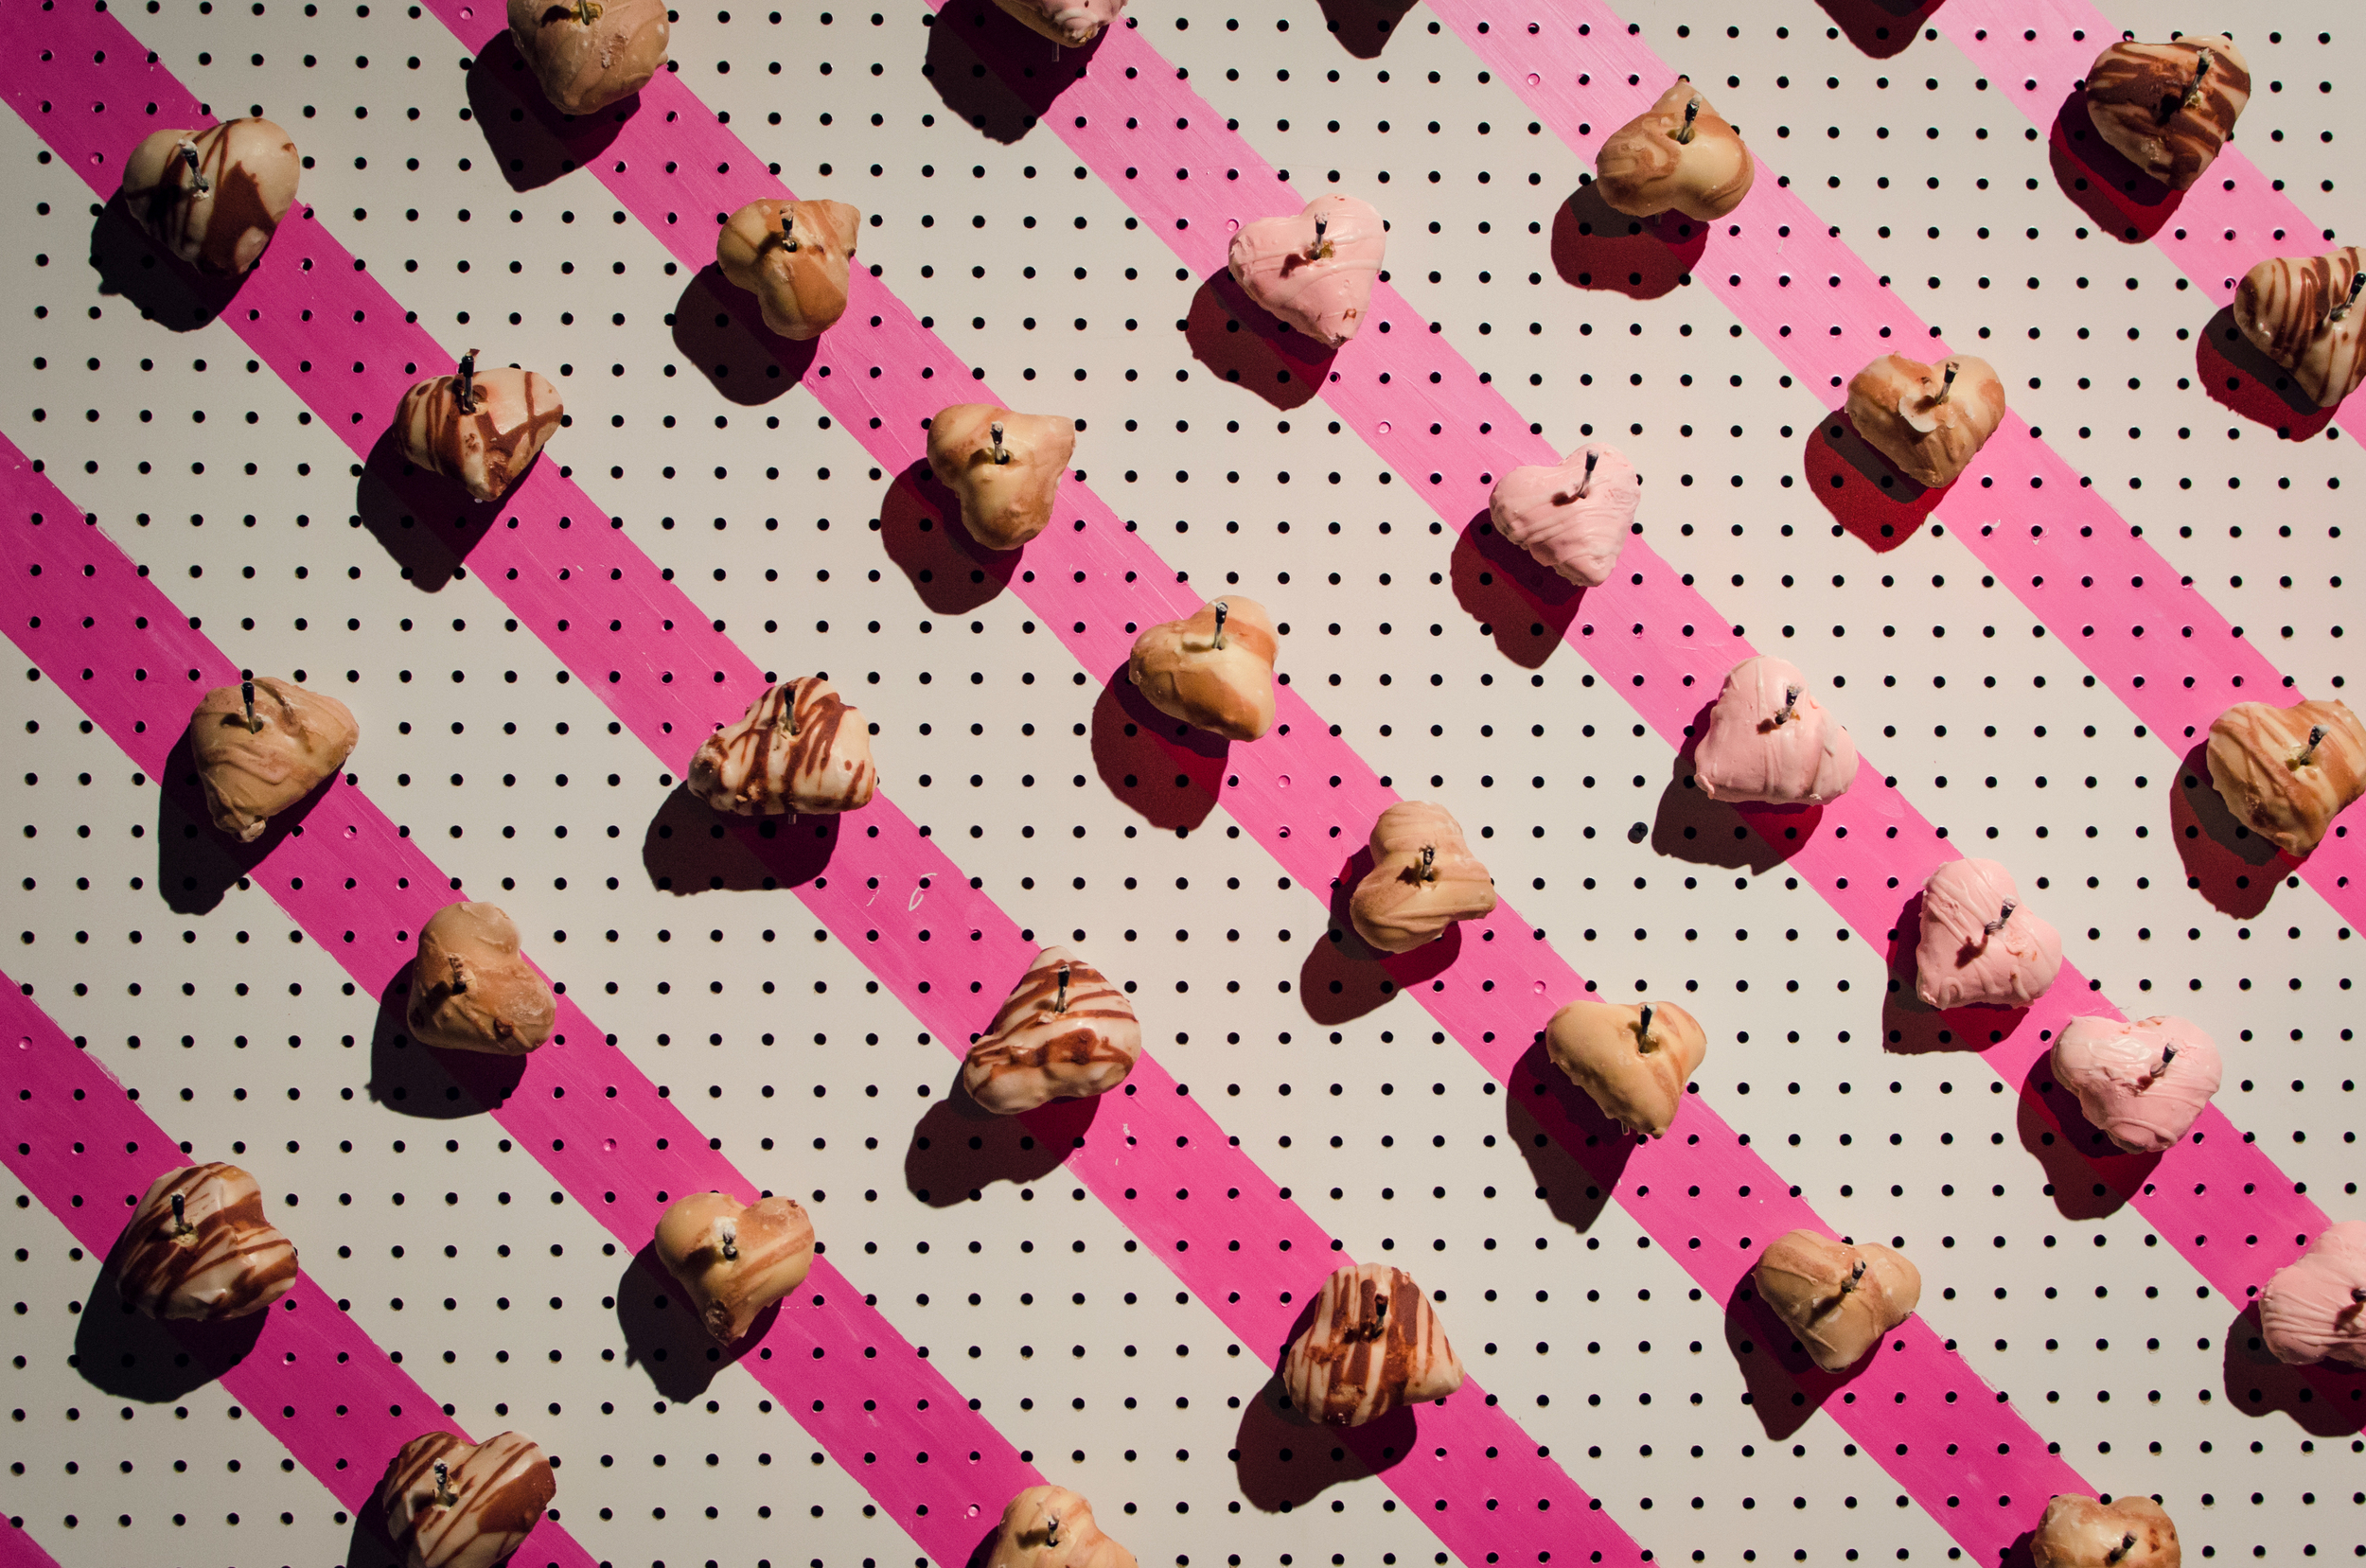 Grab a DOHnut from the decadent donut wall